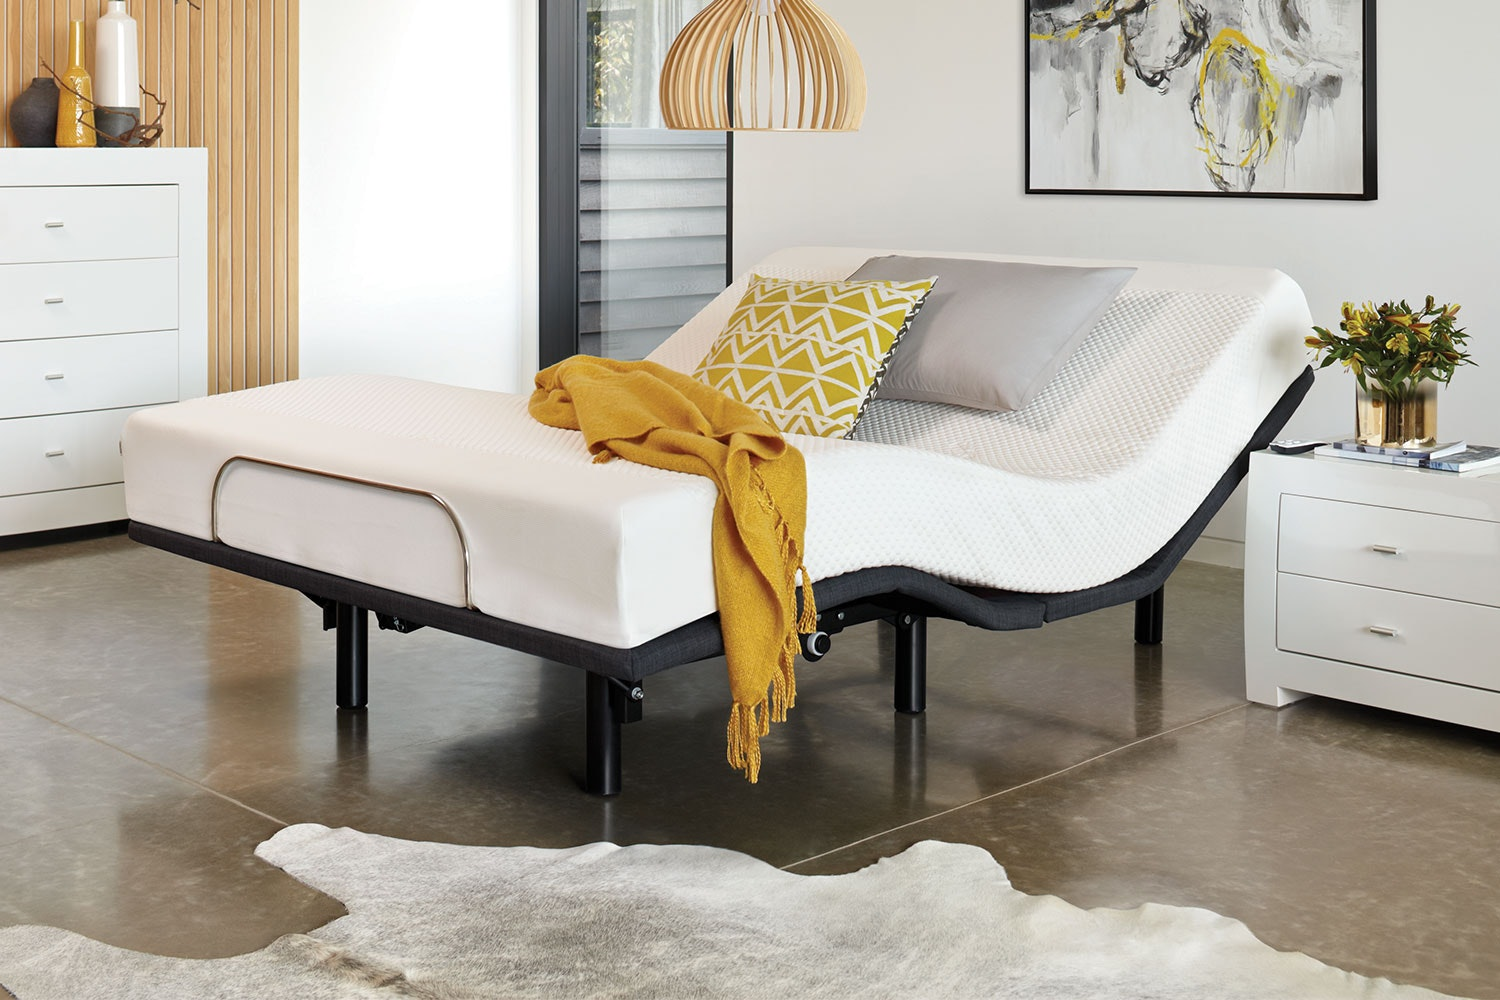 19cm Long Single Mattress with Essential Adjustable Base by Tempur